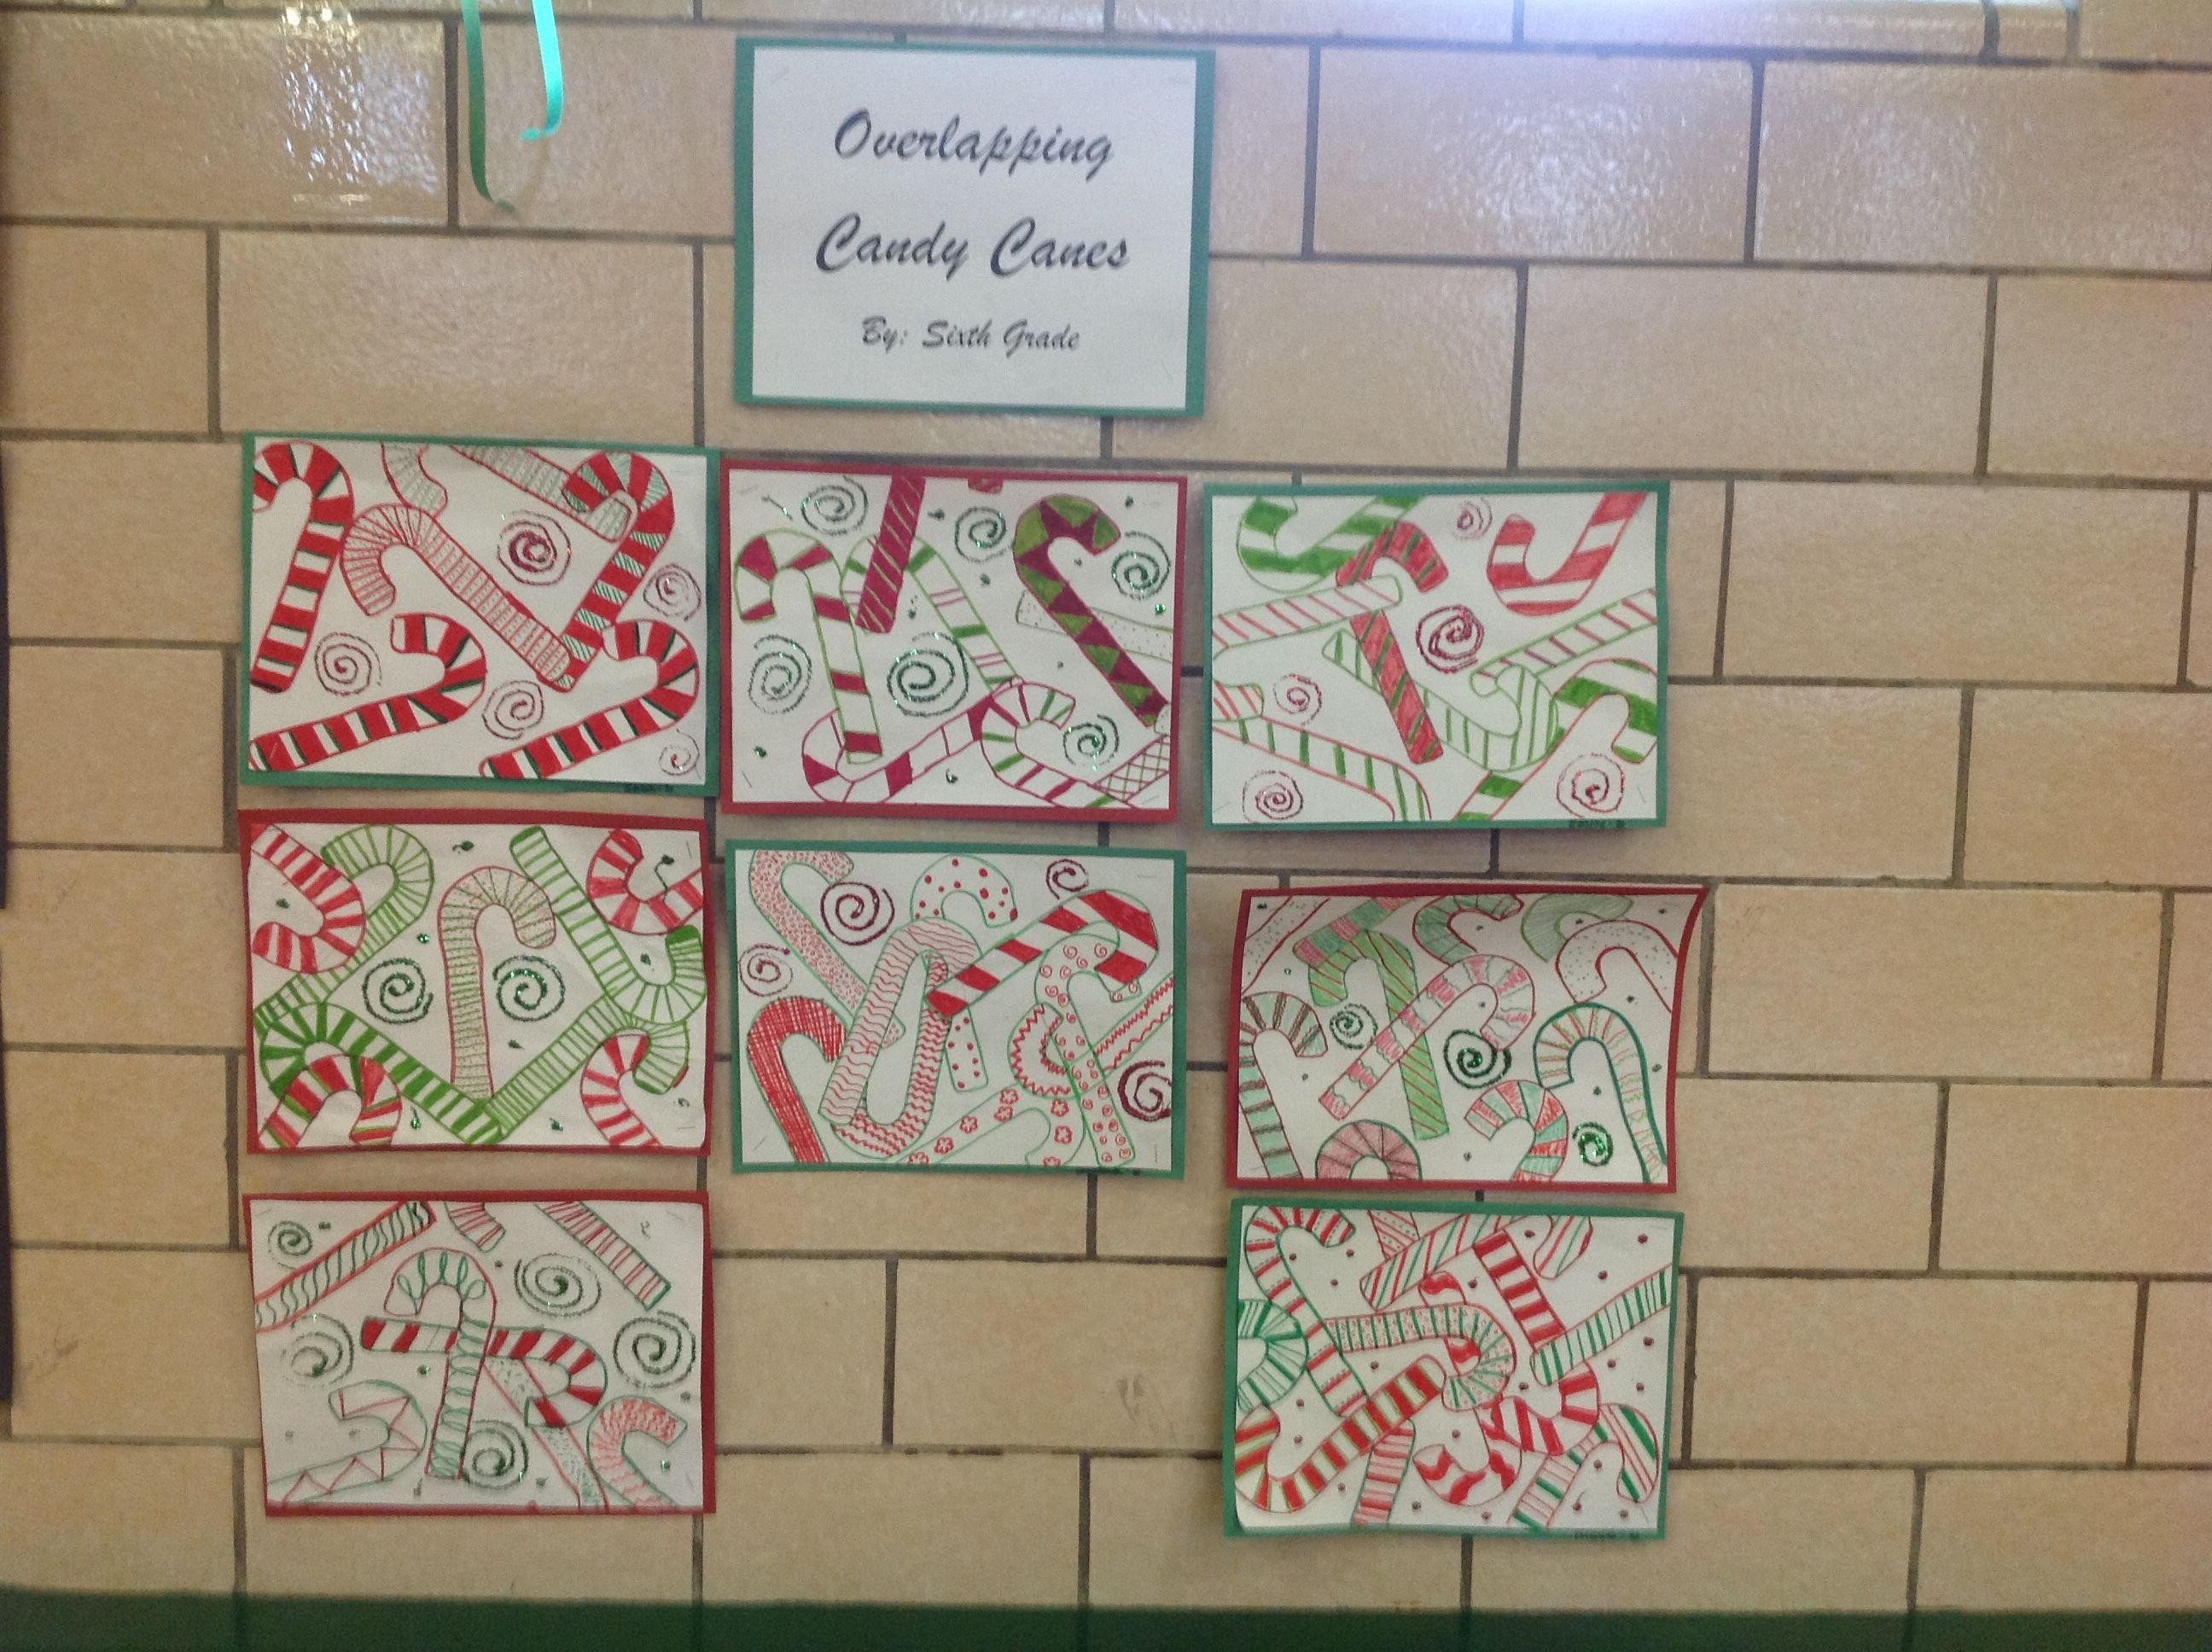 Overlapping Candy Canes Scsart